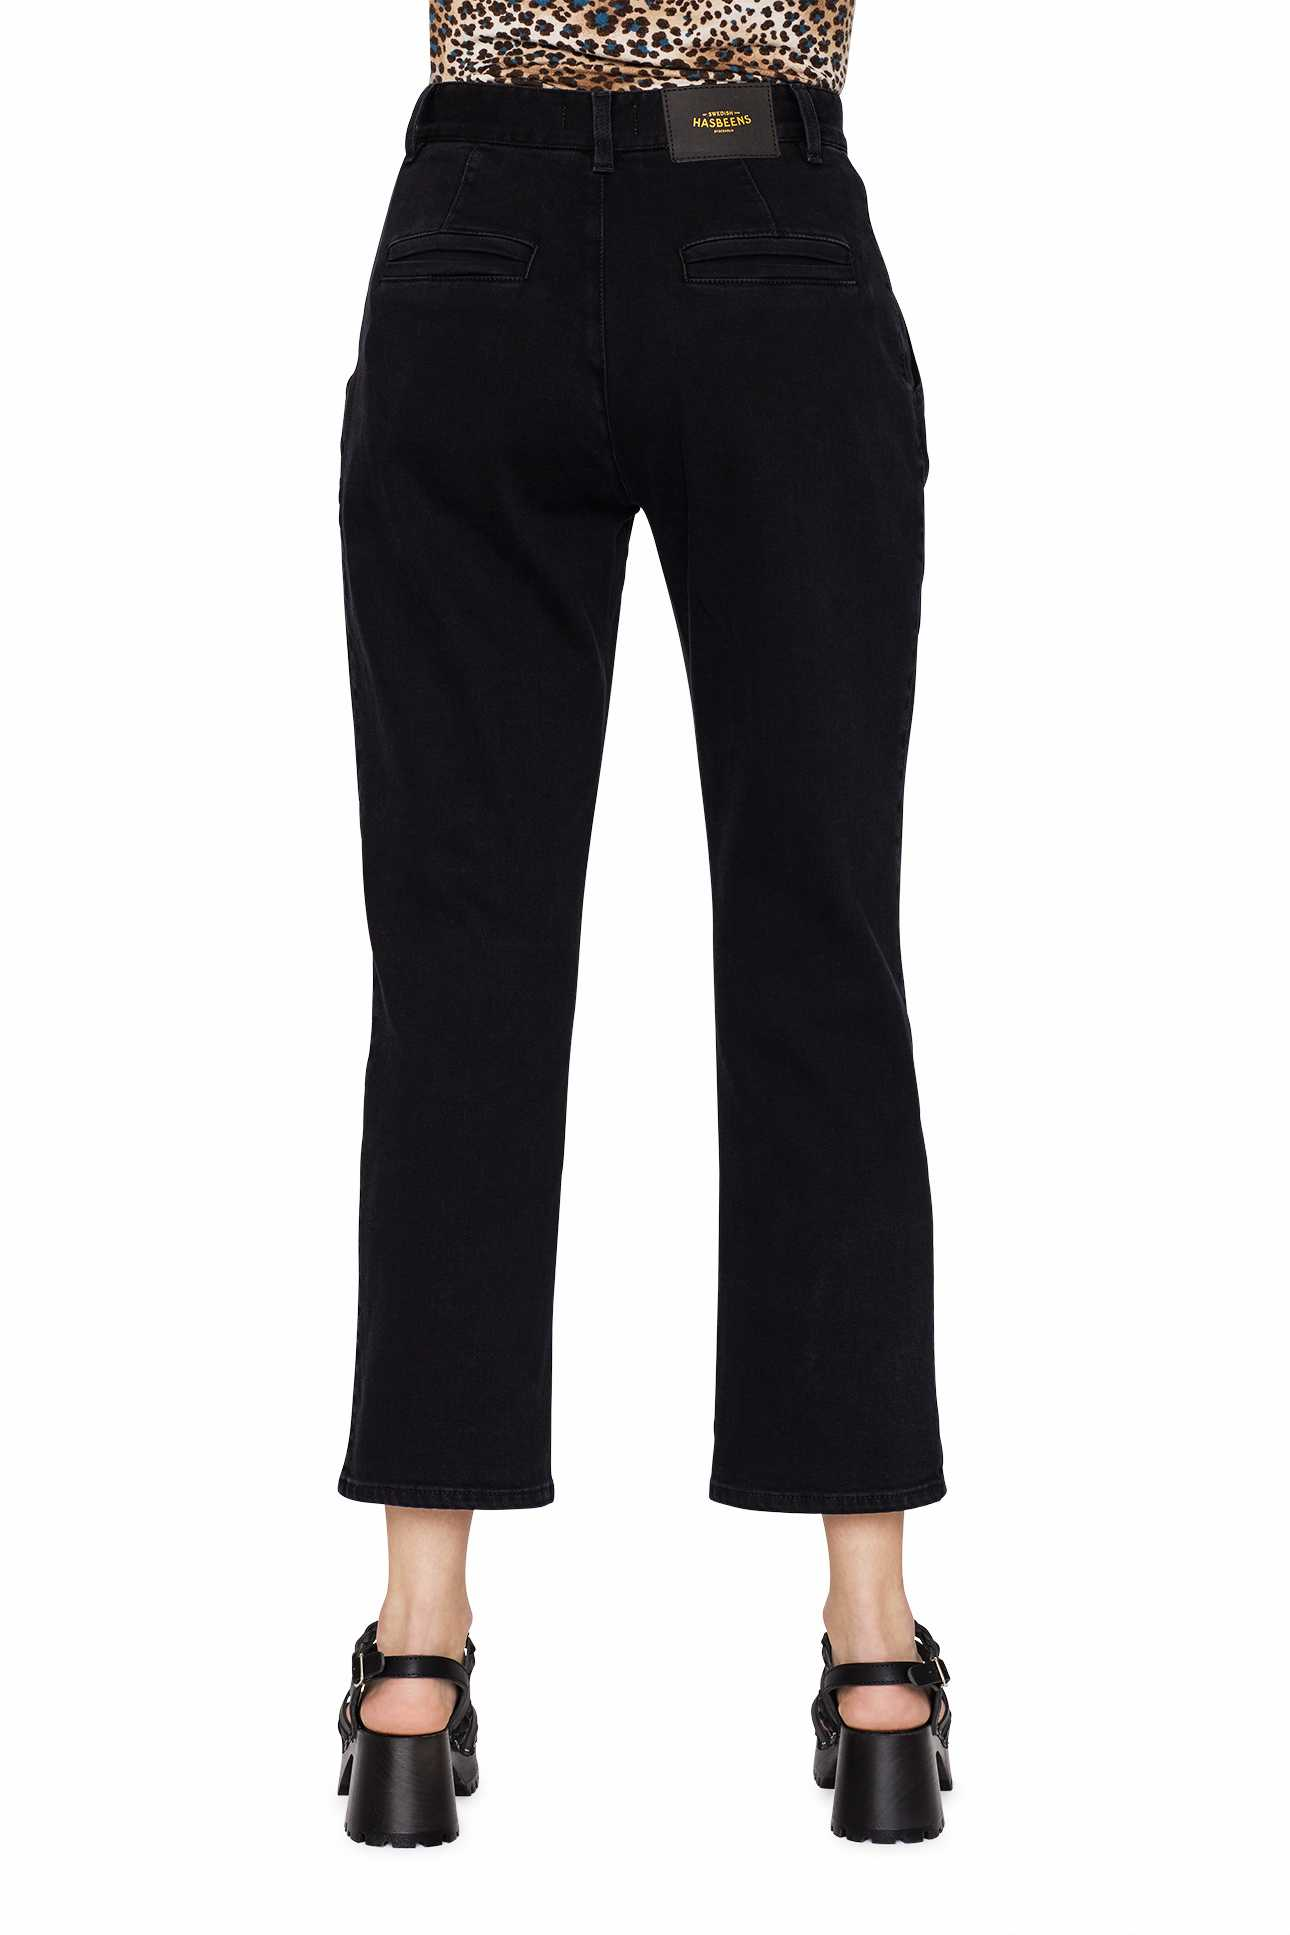 Product image Pleat Pant